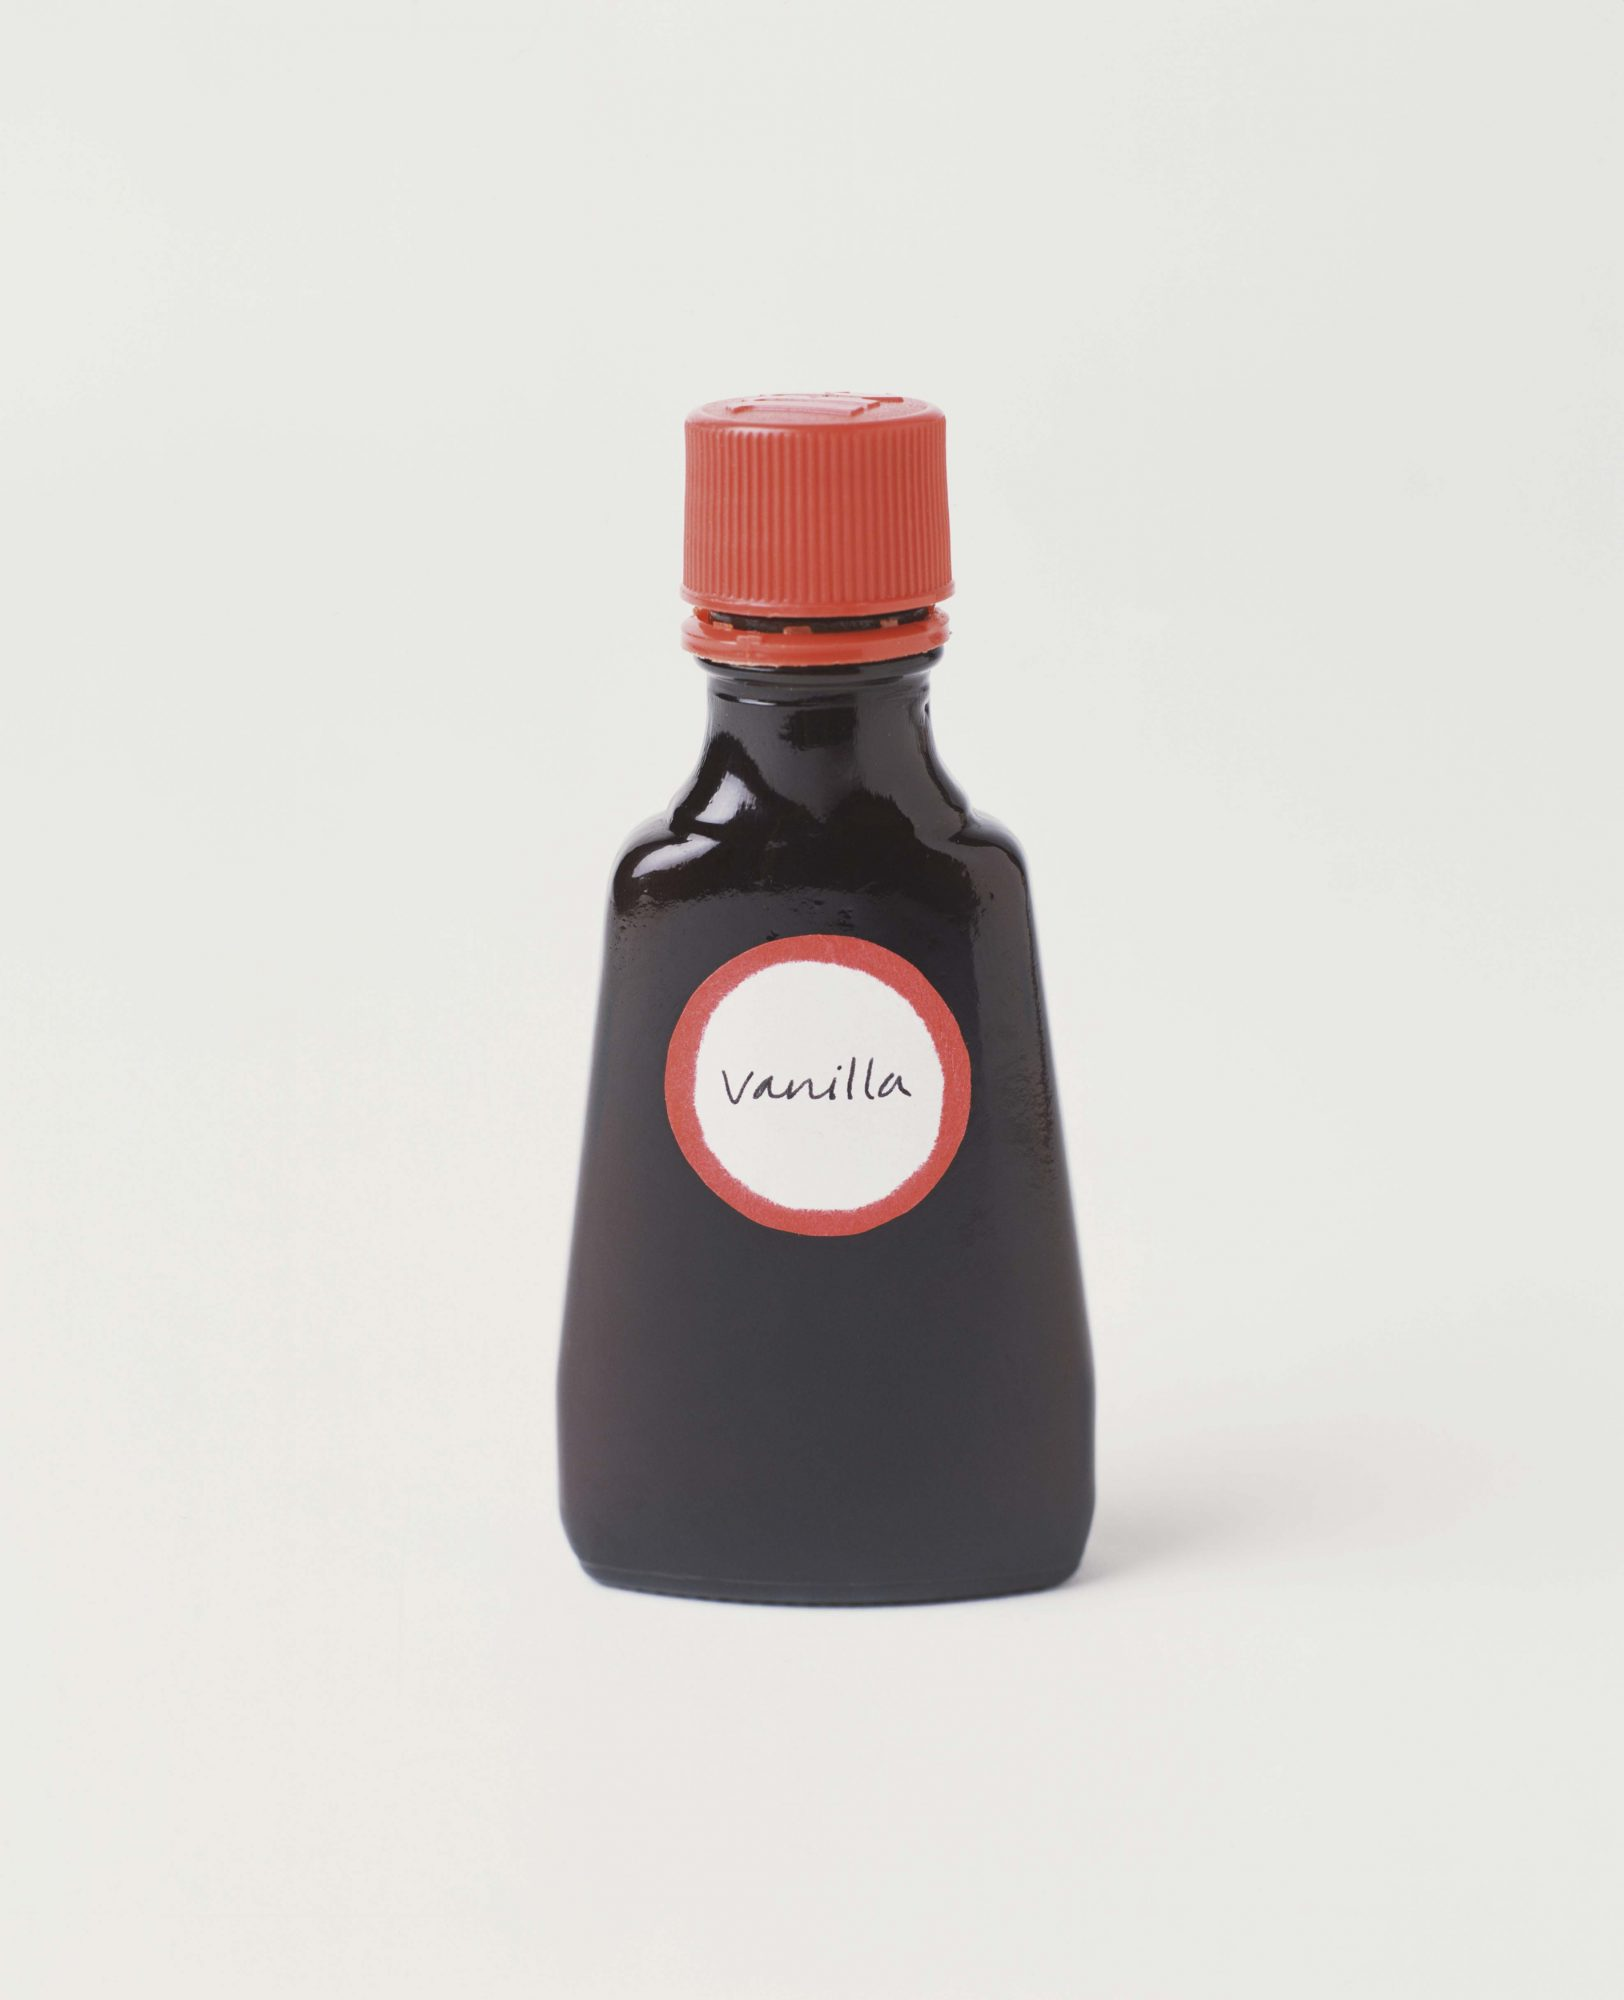 Research Suggests That Vanilla Extract May Help Curb Sugar Consumption